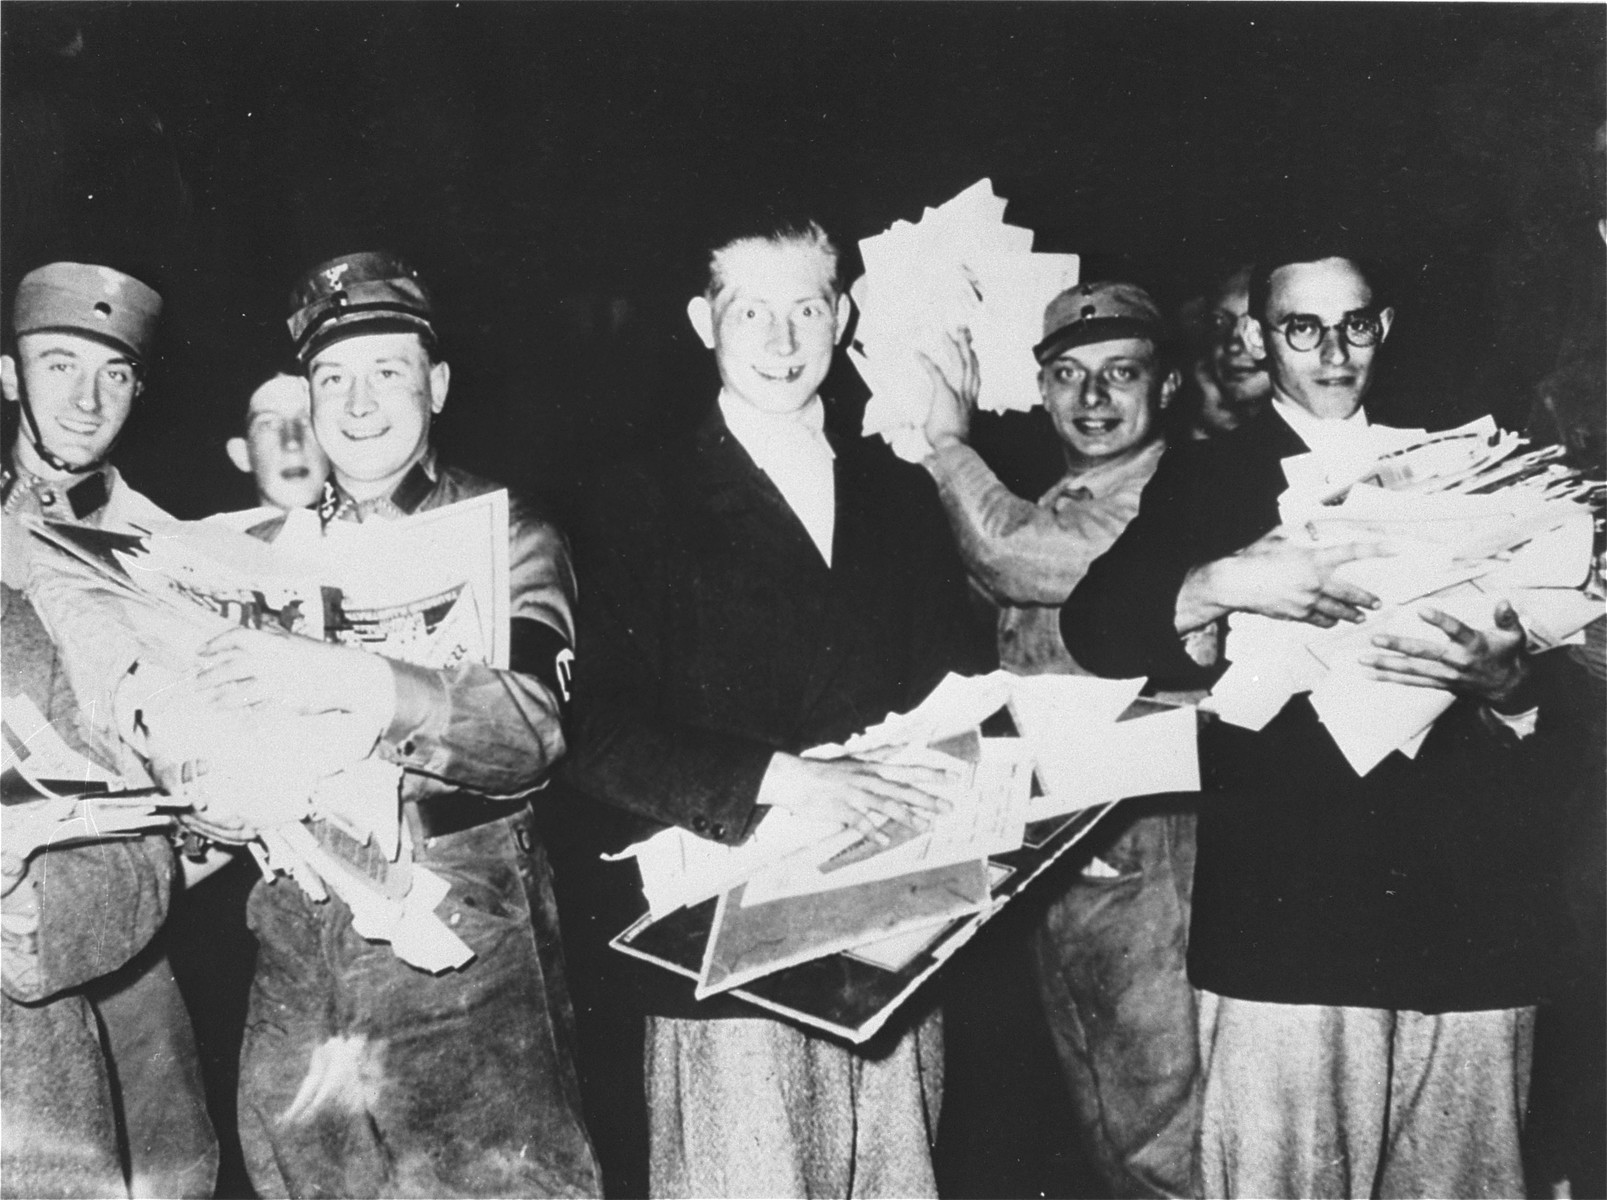 """Students and SA members carry piles of """"un-German"""" literature to throw into the bonfire on the Berlin Opernplatz."""